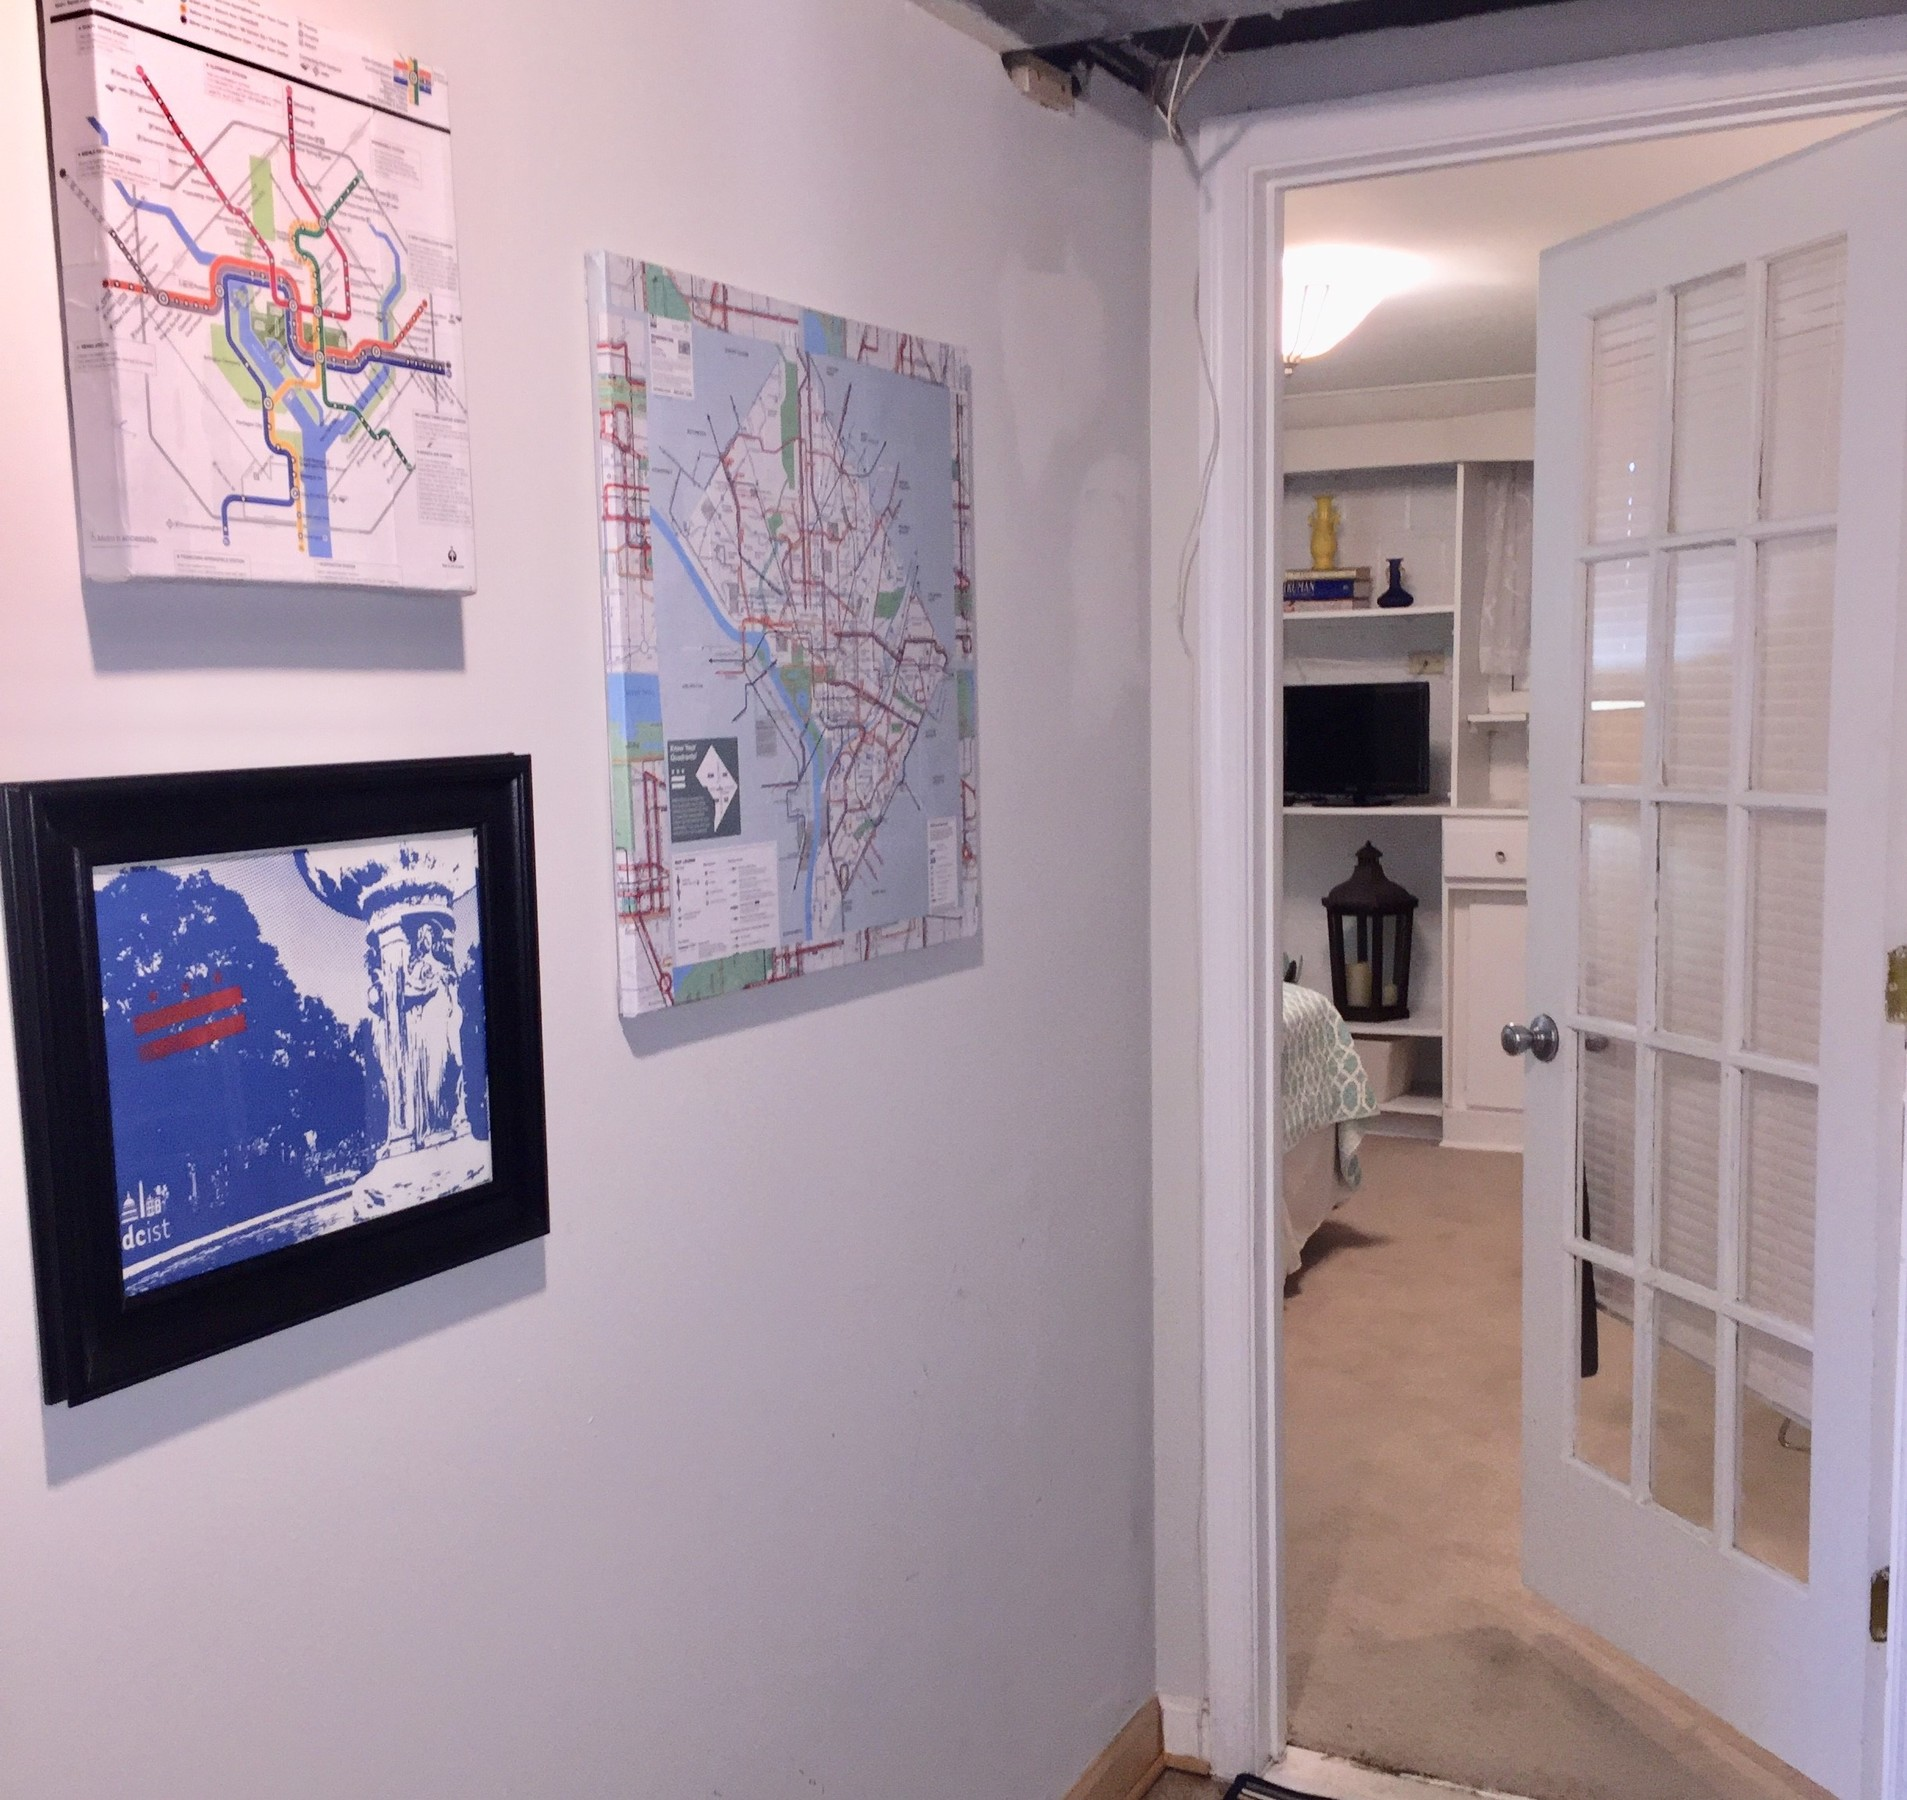 "Tim displays his completed ""map artwork"" in a home setting."